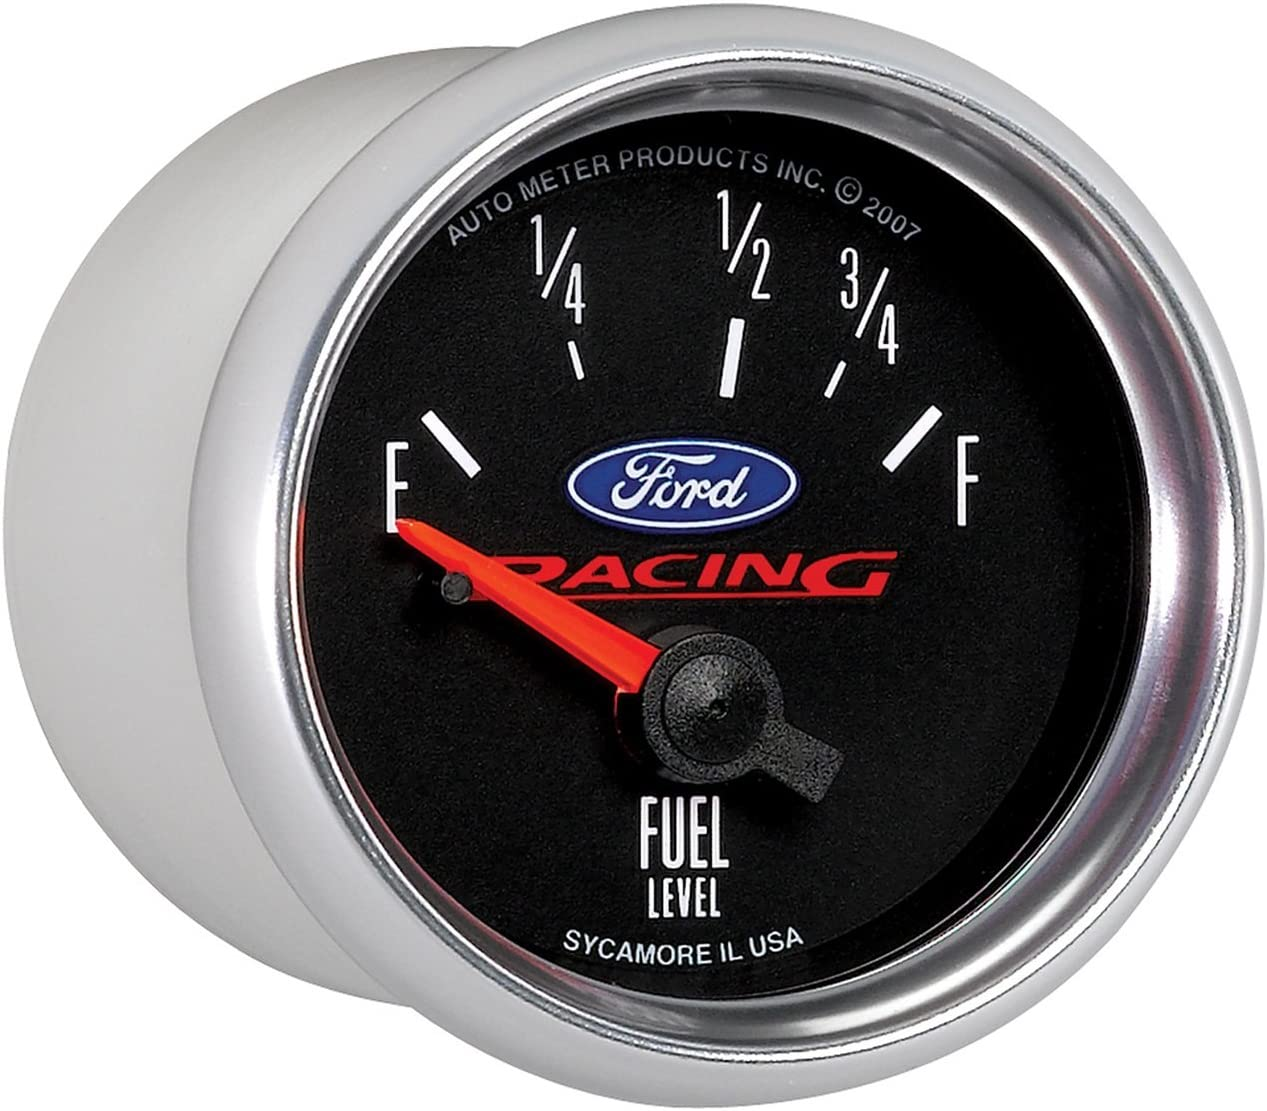 Auto Meter 880075 2-1//16 Empty 73 Ohm//Full 10 Ohm Fuel Level Gauge for Ford Racing